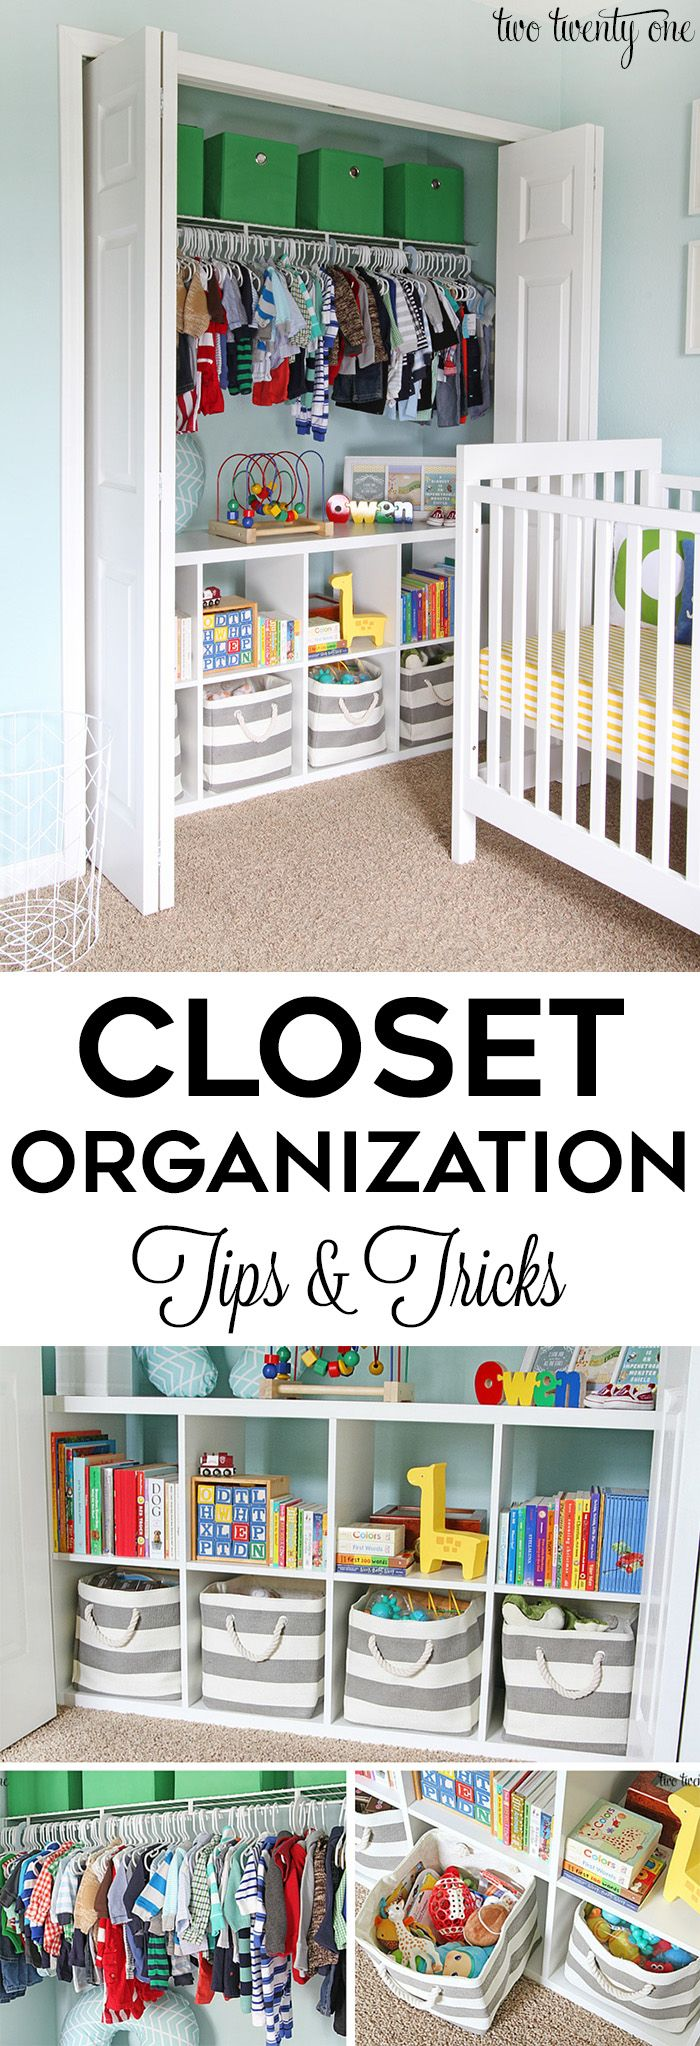 Nursery Closet | Pinterest | Closet organization, Organizations and ...